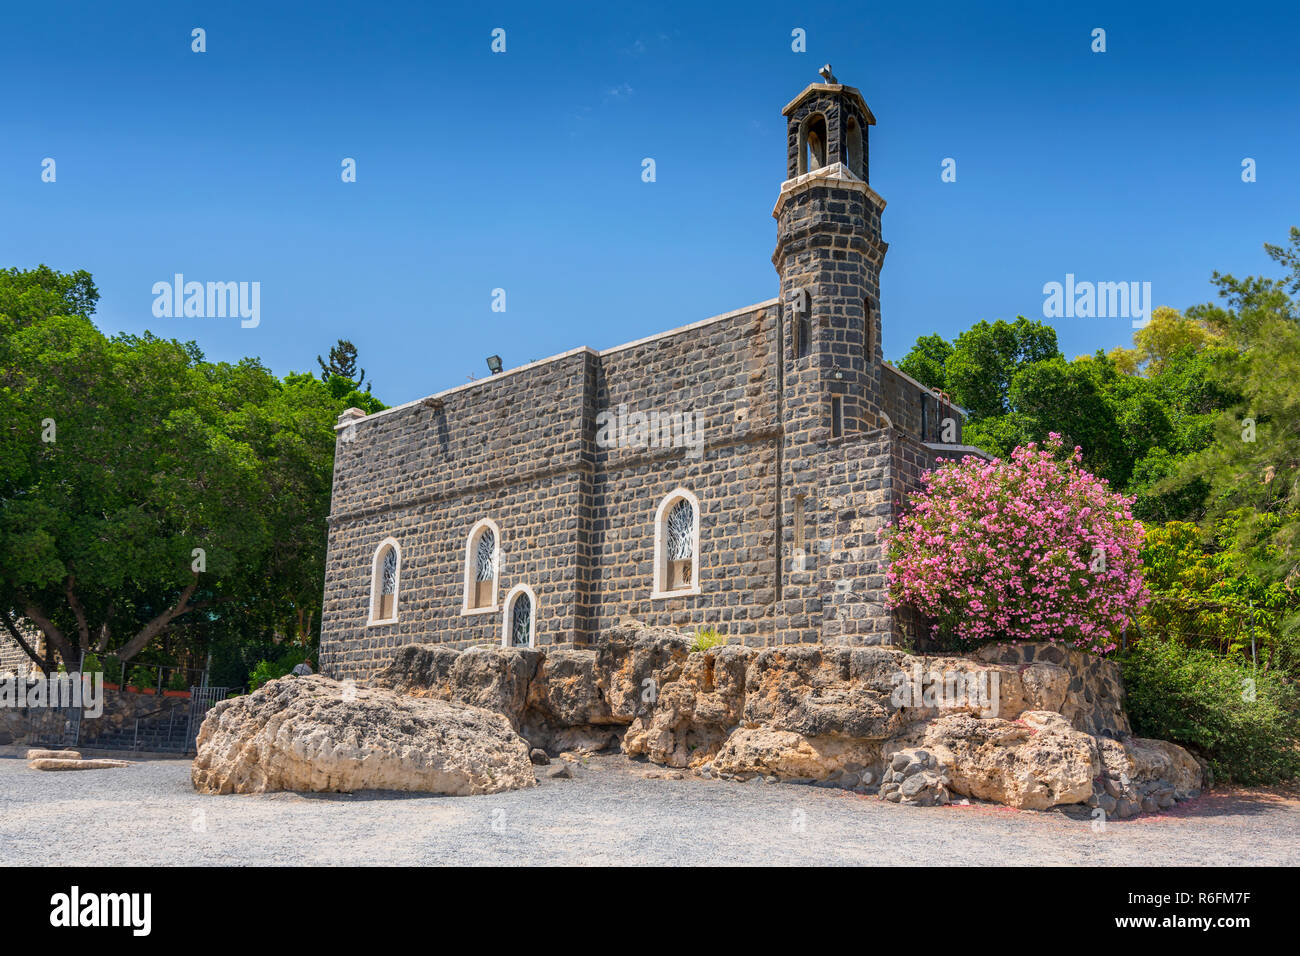 Church Of The Primacy Of St Peter In Tabgha, Galilee, Israel, Middle East - Stock Image